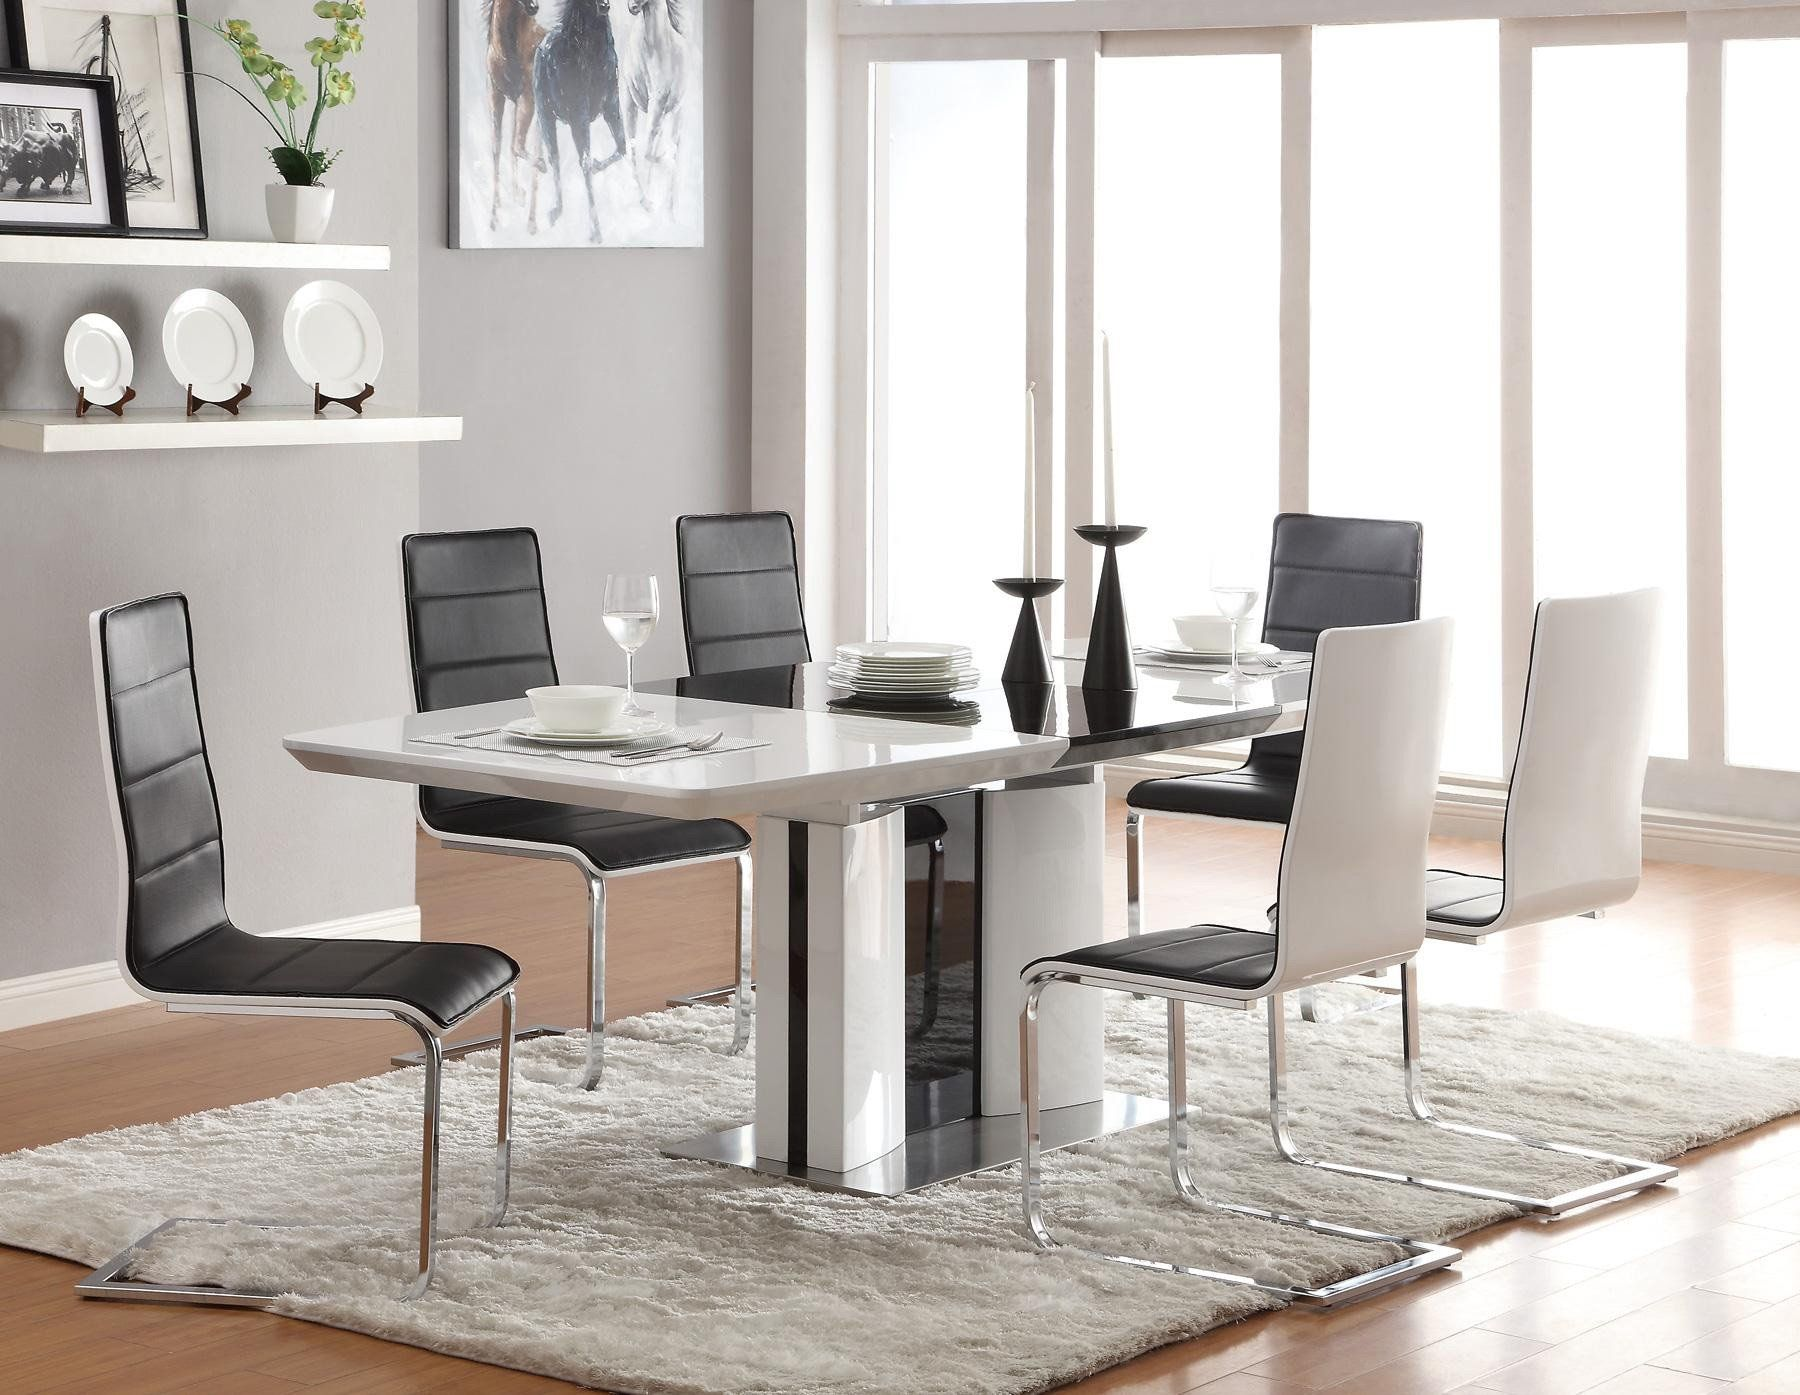 Modern Italian Dining Room Furniture Sets With Black And White Pedestal Dining  Table Using Metal Base Table Also Modern Dining Chairs And White Shag Rug  ...